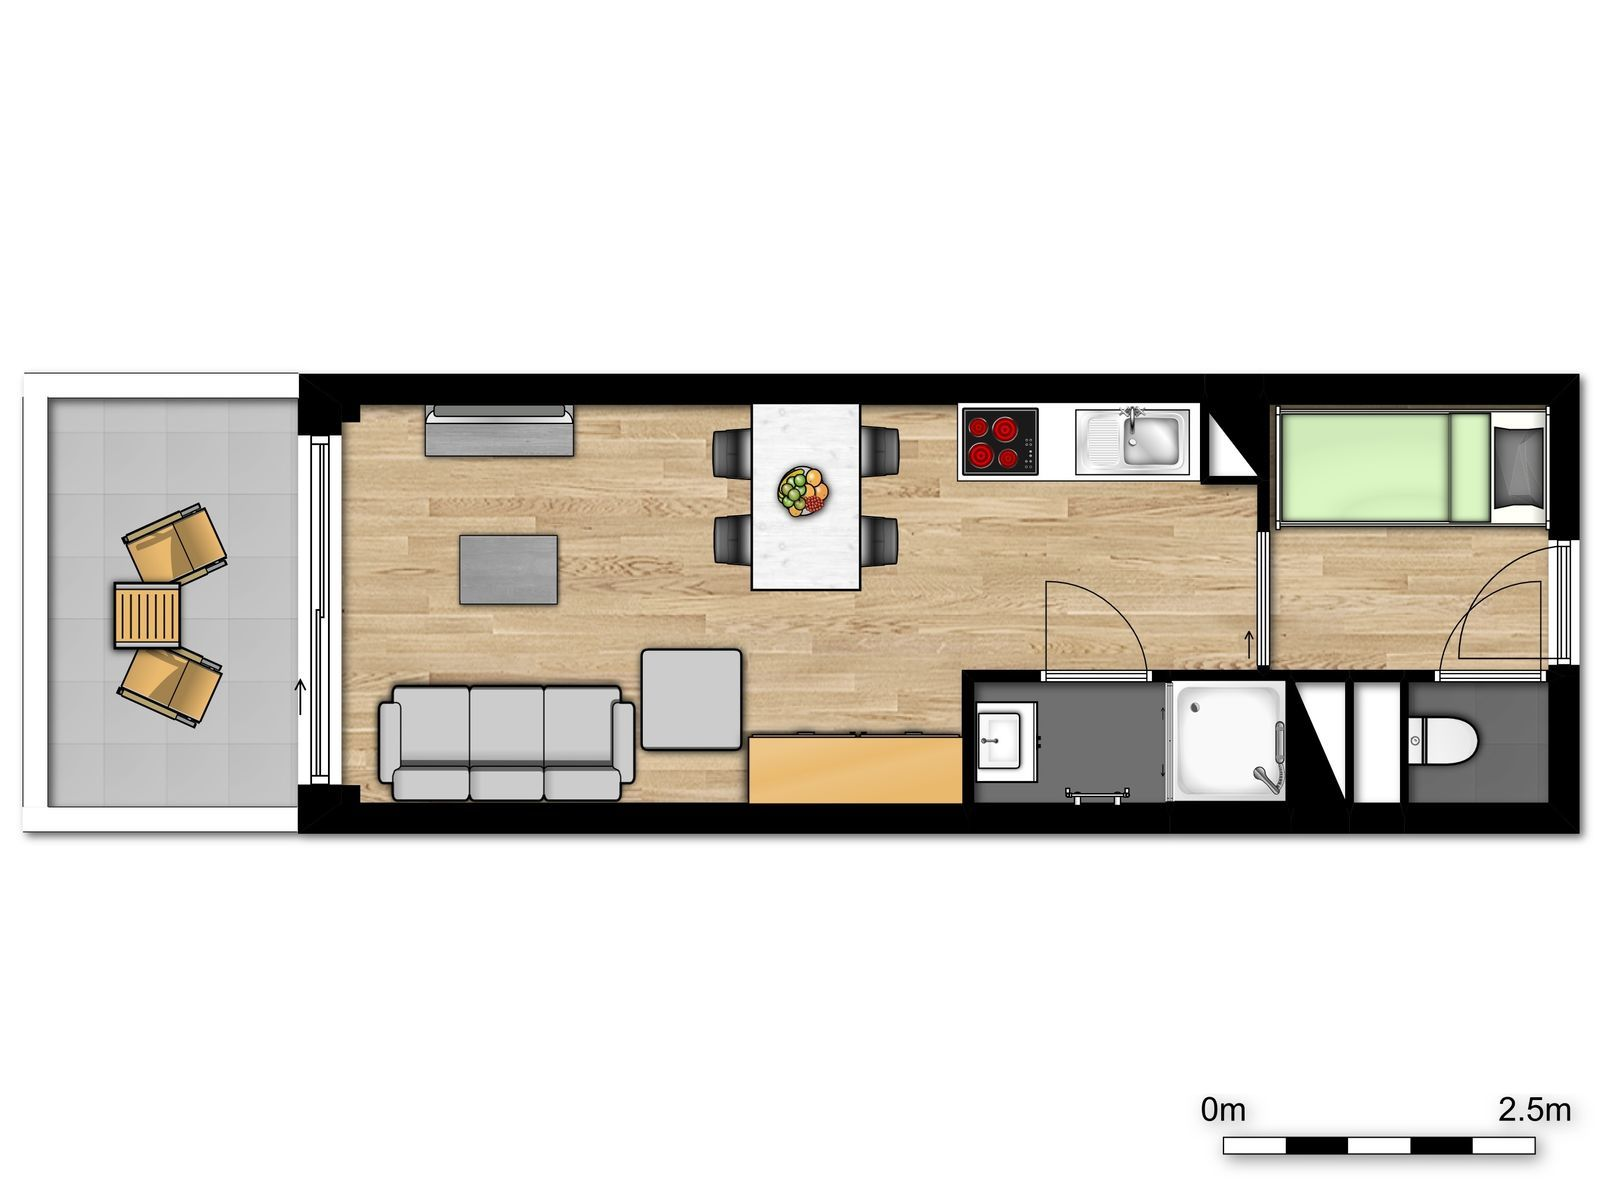 New standard studio for 4 people with sofa bed and bunk bed